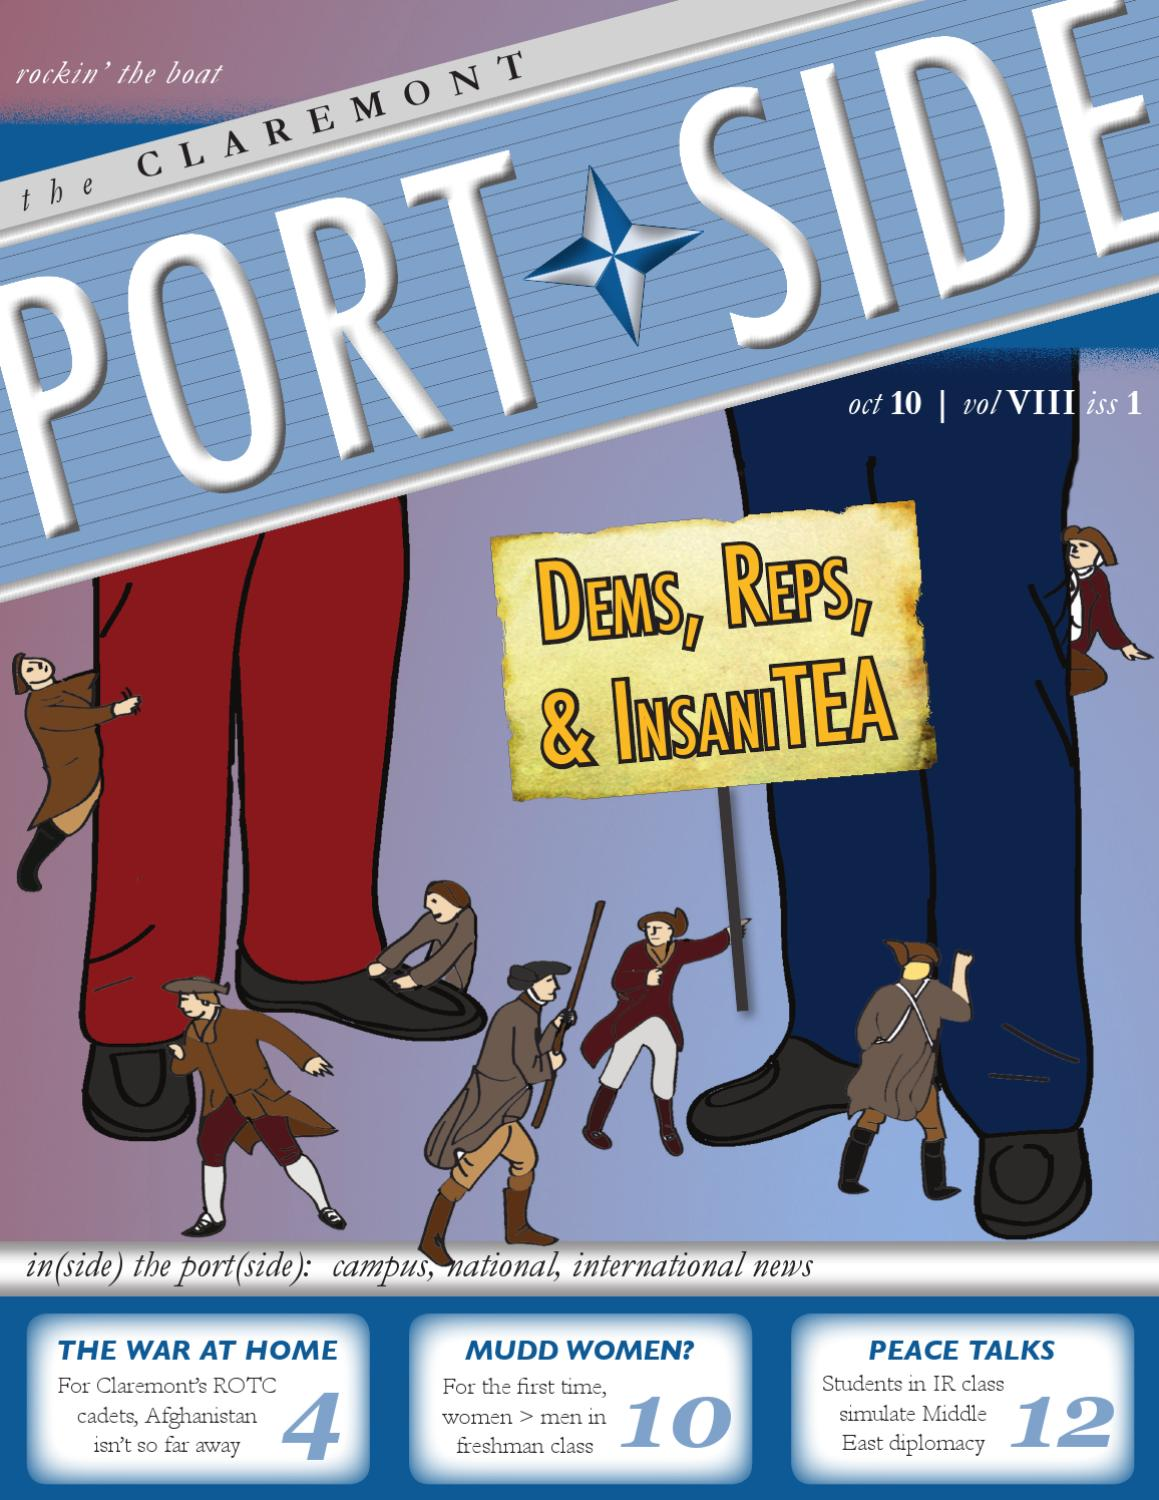 October 2010 by Claremont Port Side - issuu